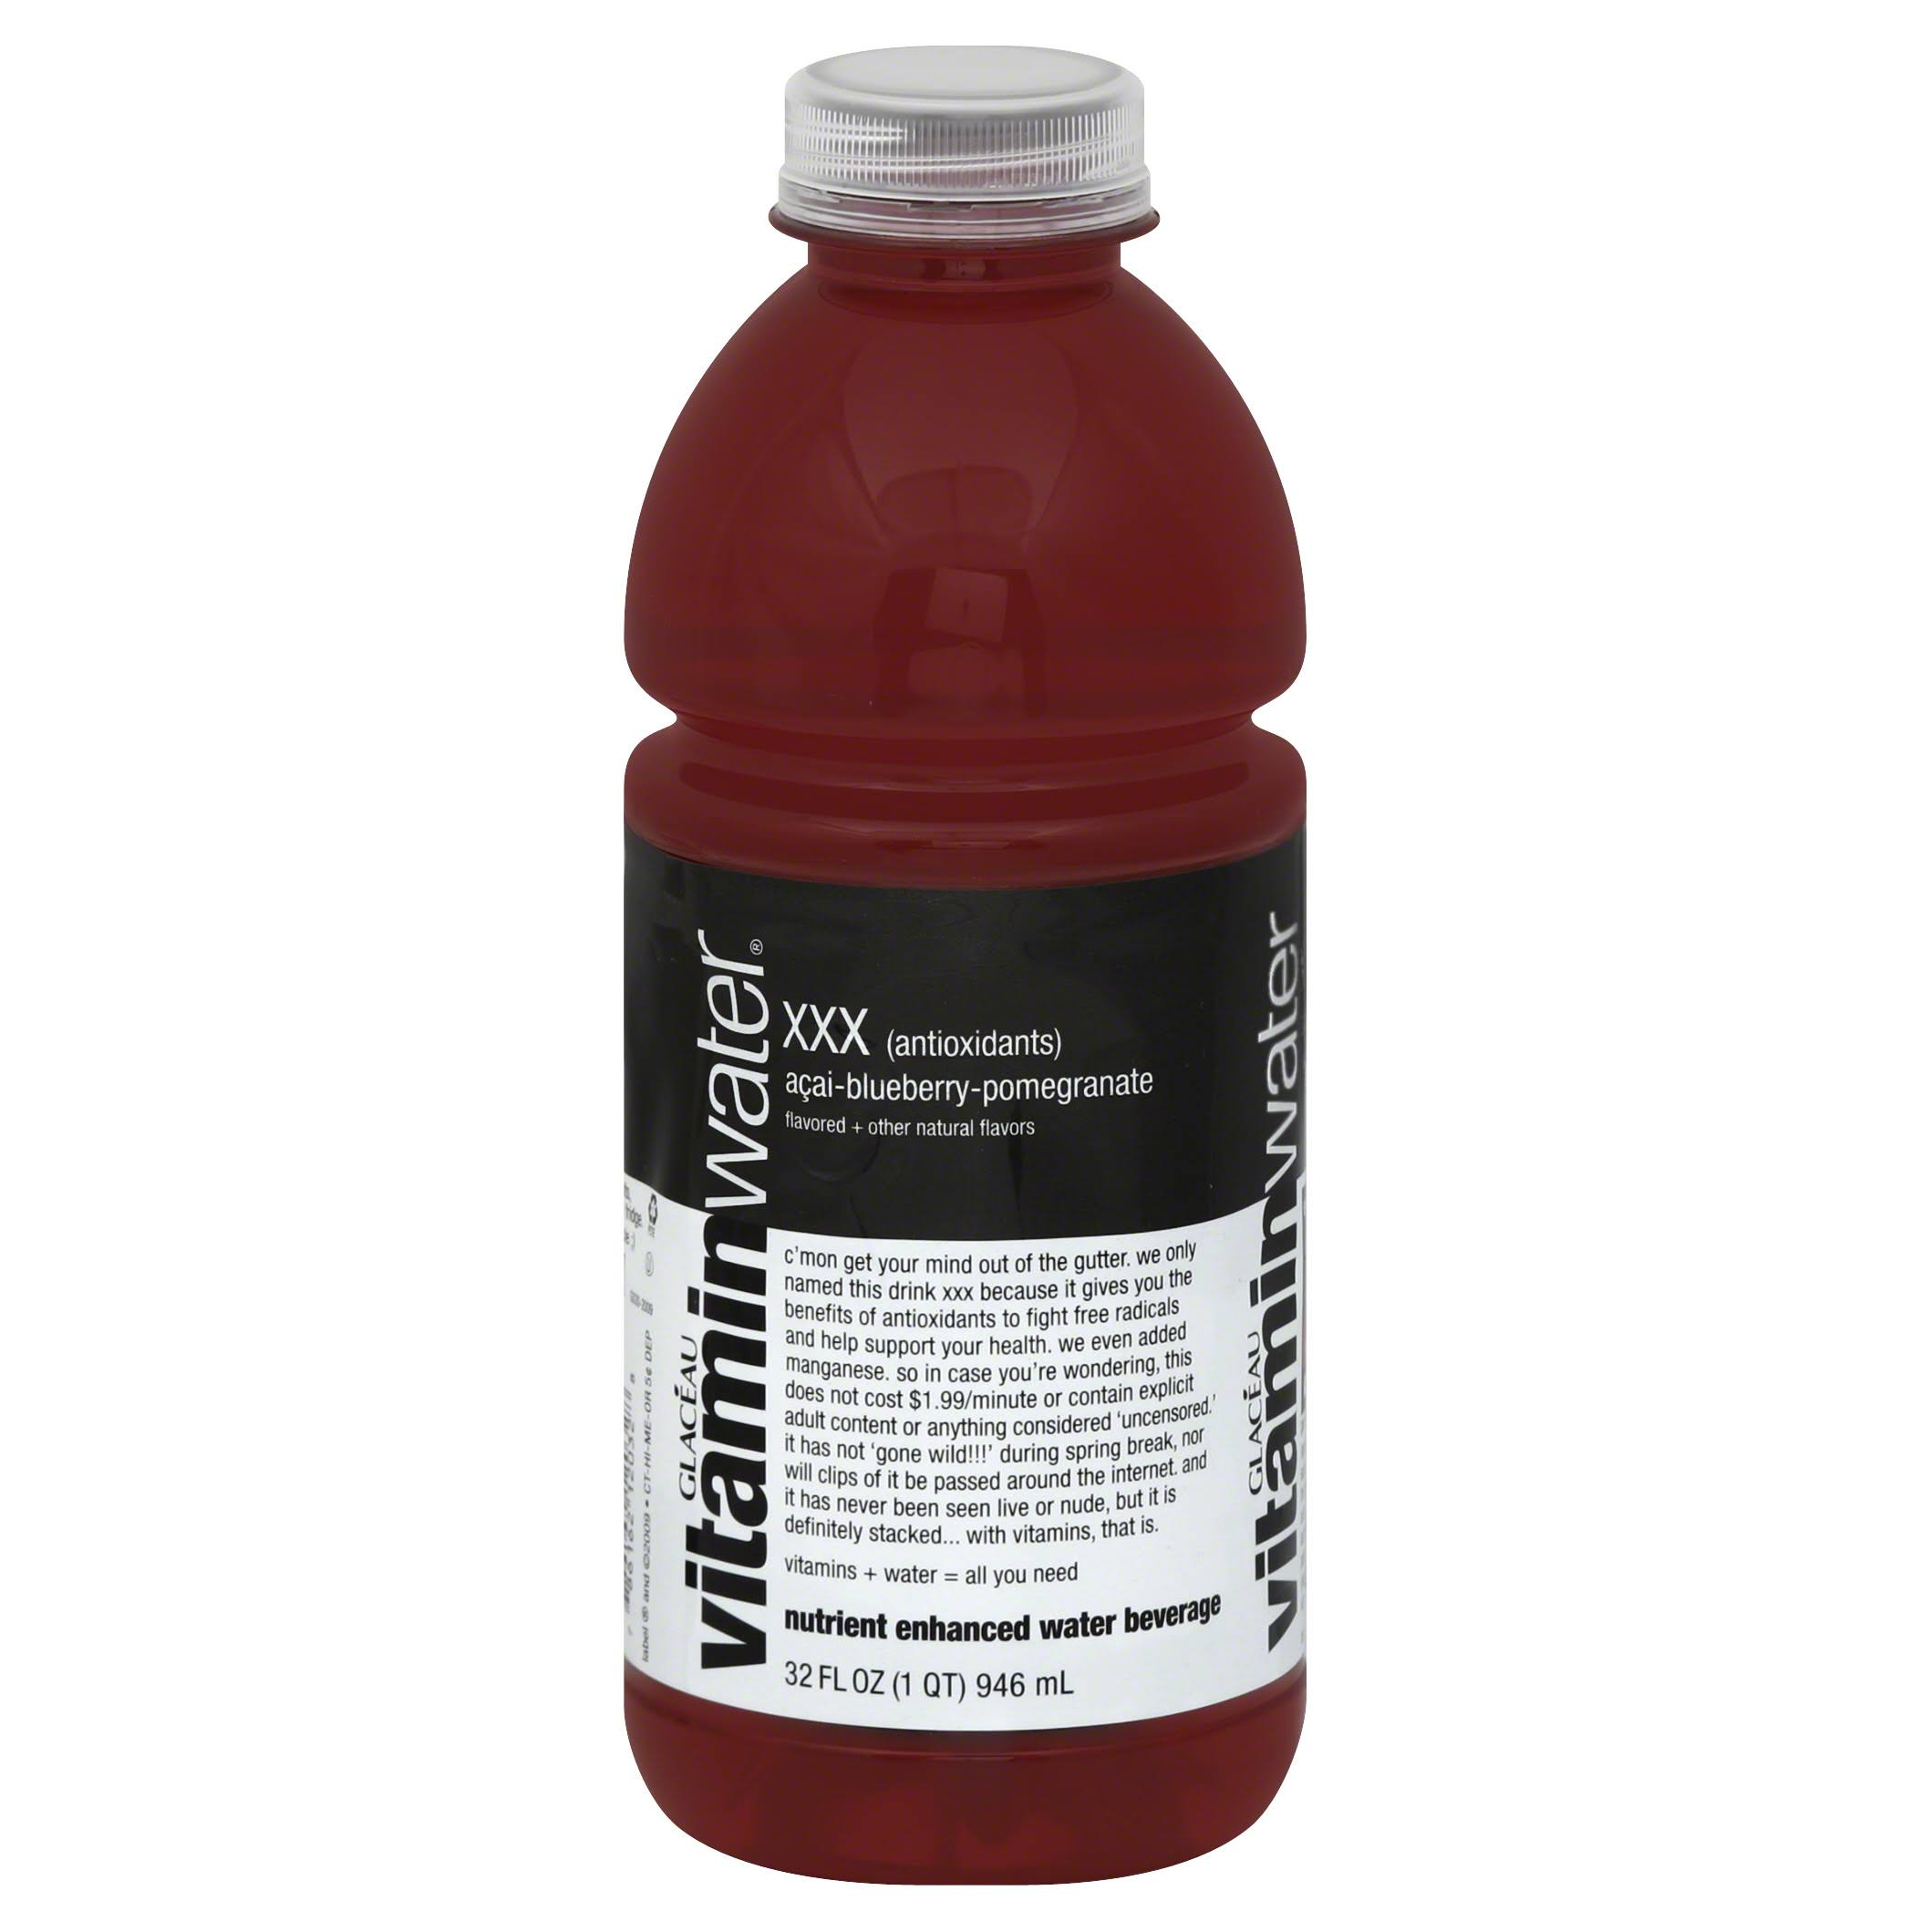 Vitamin Water Water Beverage, Nutrient Enhanced, XXX, Acai-Blueberry-Pomegranate - 32 fl oz